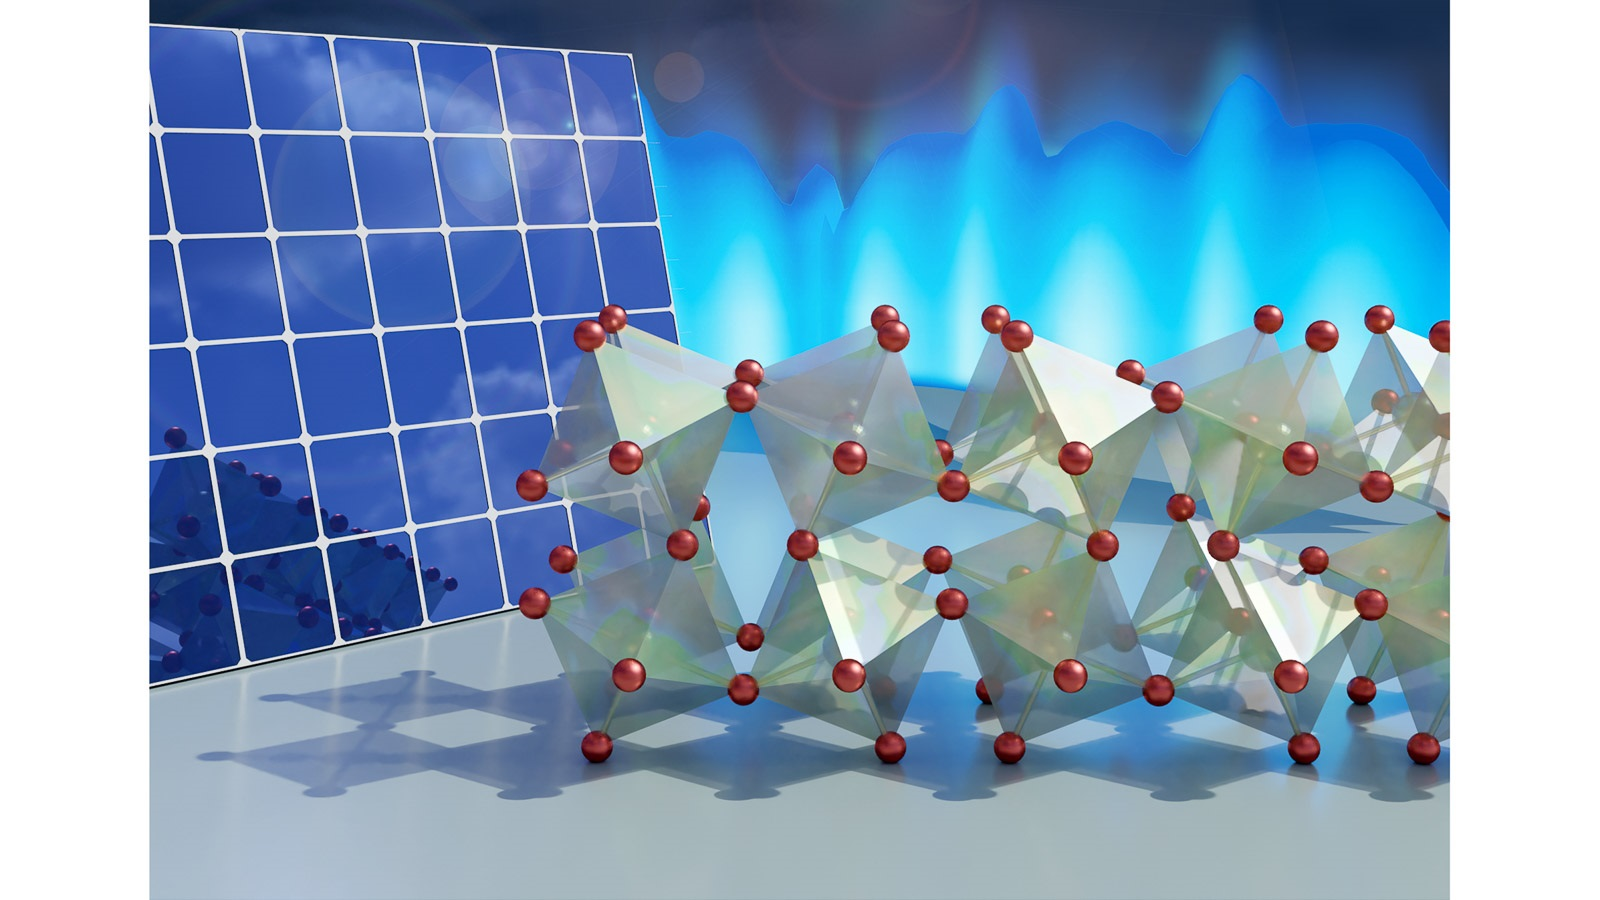 Illustration of the crystal structure of the perovskite. The molecules rotate about their hinges in two dimensions, which could explain the material's photovoltaic abilities. (Image by Jill Hemman, Oak Ridge National Laboratory.)